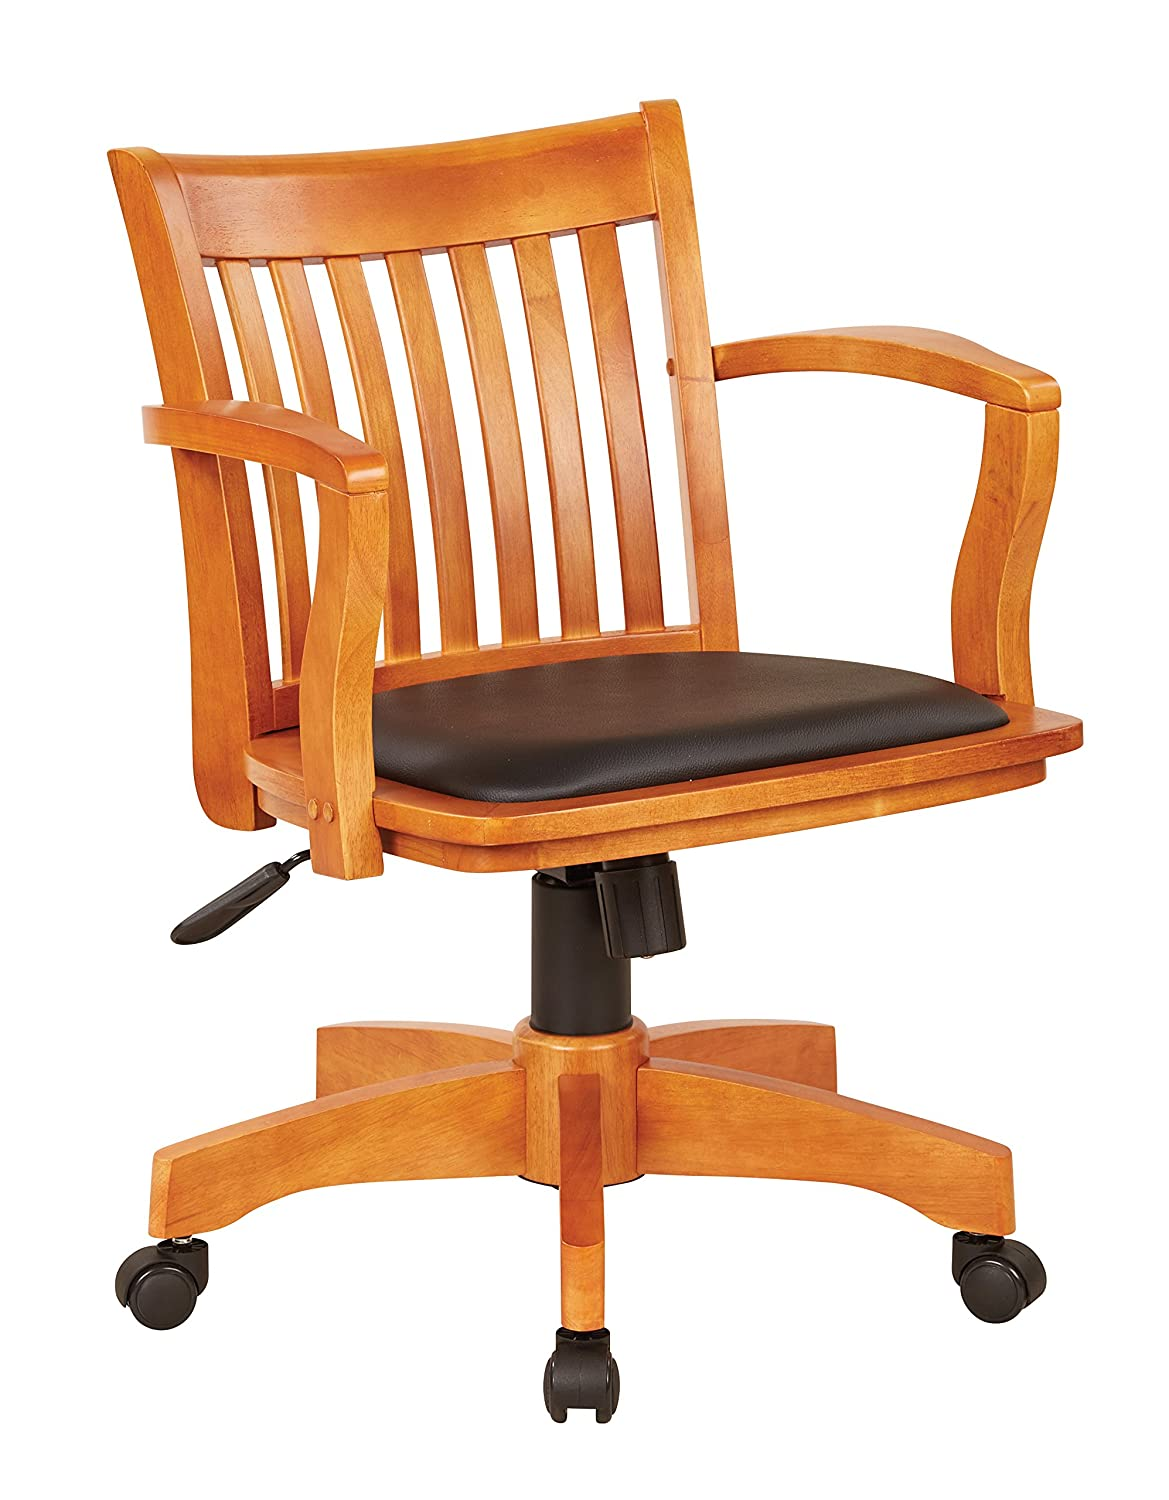 Etonnant Amazon.com: Office Star Deluxe Wood Bankers Desk Chair With Black Vinyl  Padded Seat, Fruit Wood: Kitchen U0026 Dining